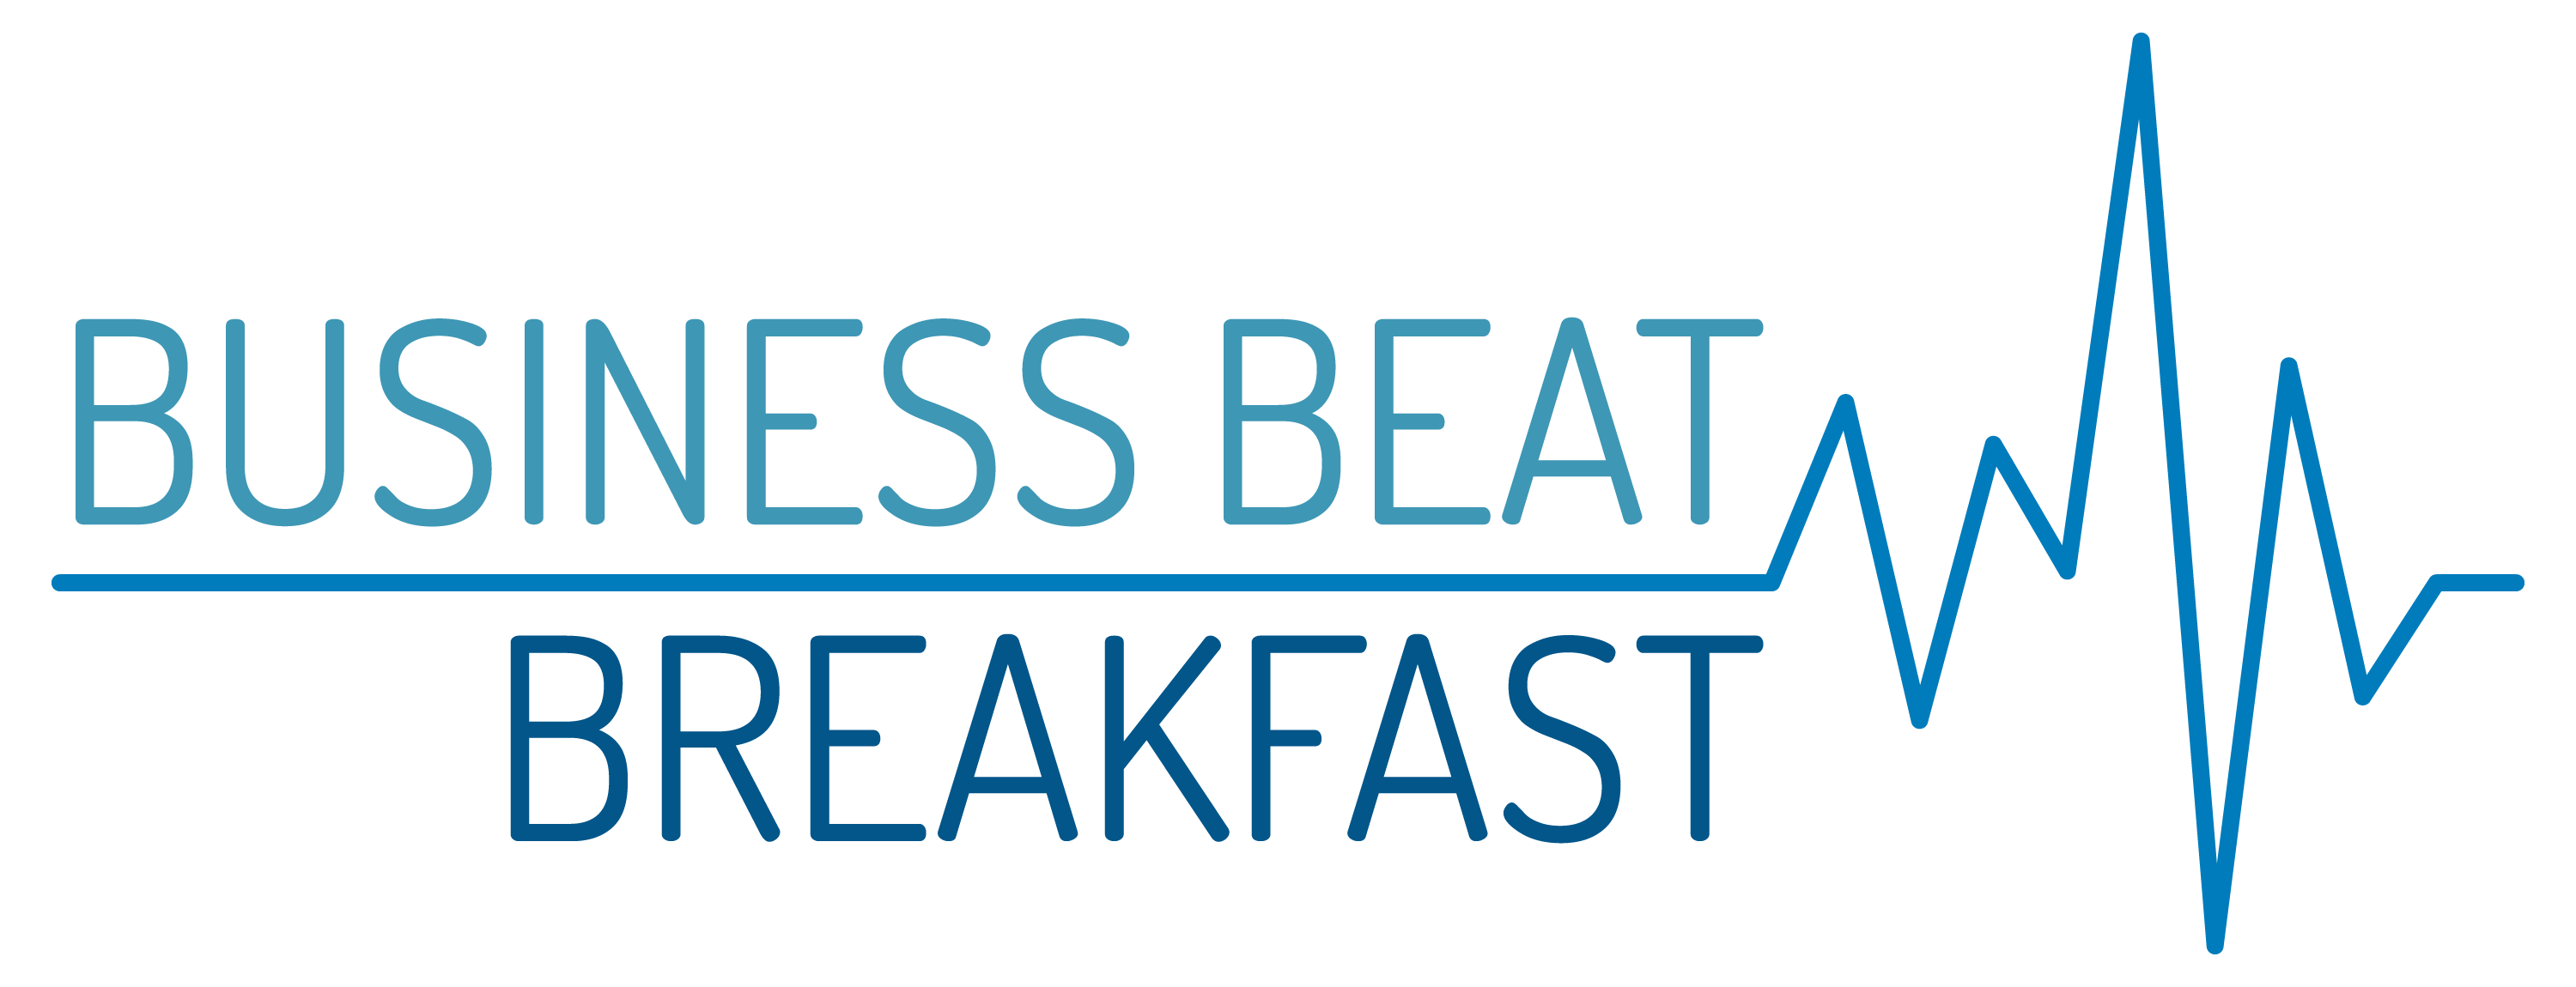 BUSINESS BEAT BREAKFAST: KEYNOTE SPEAKER - LESLEY EVERETT! @ Carmel Mission Inn